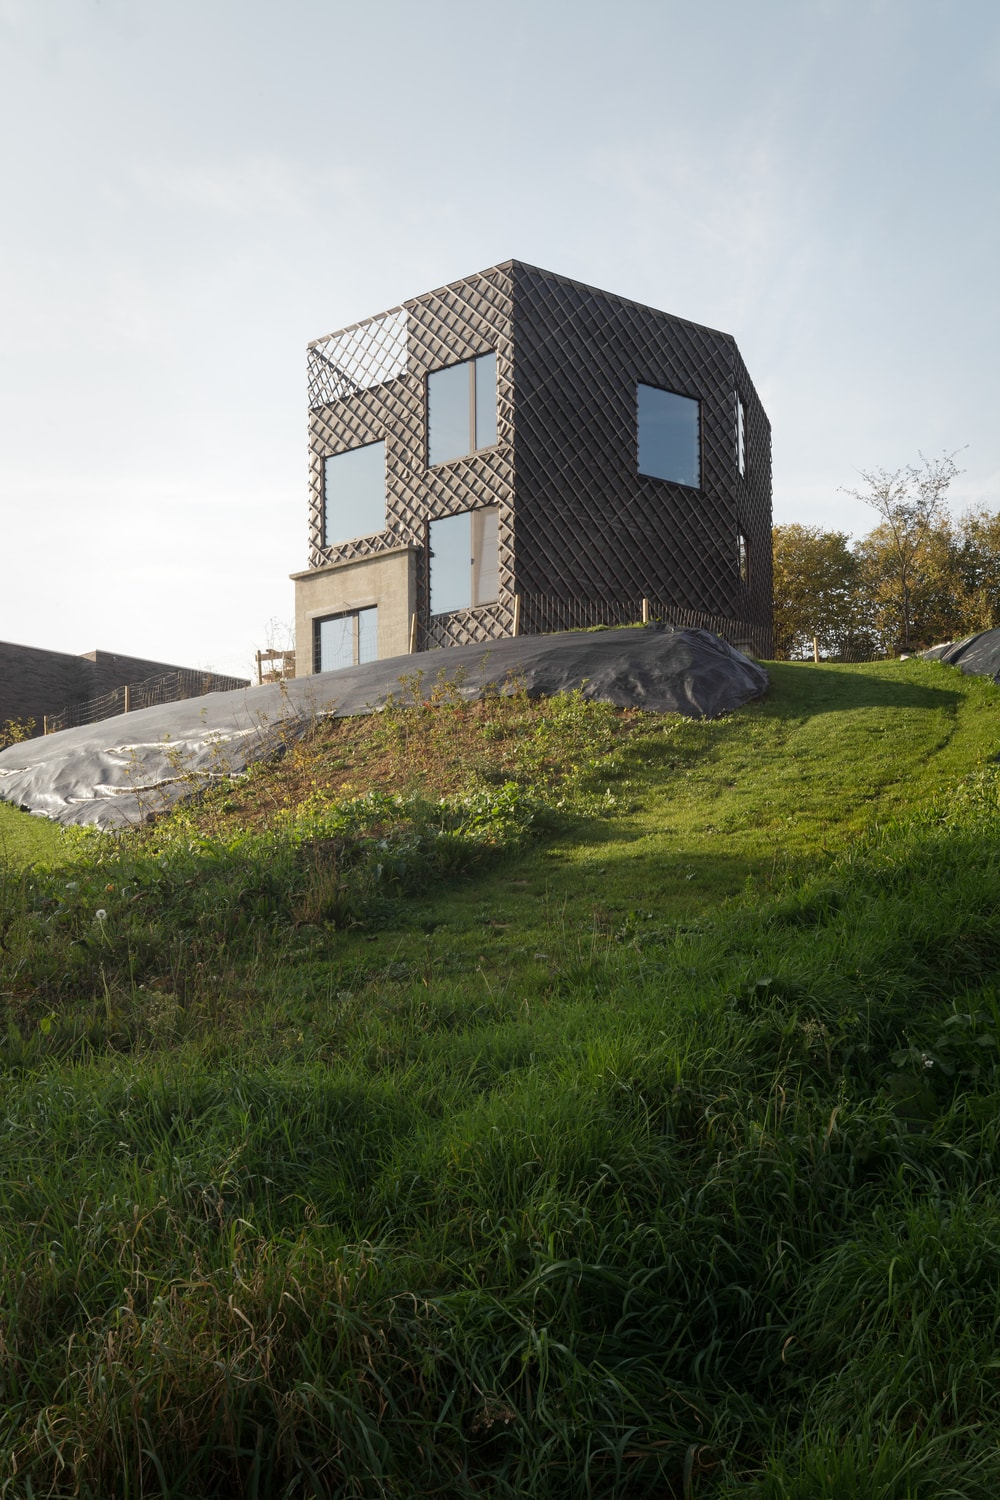 This is a closer look at the house showcasing the elevated landscape of the hill it is built on.